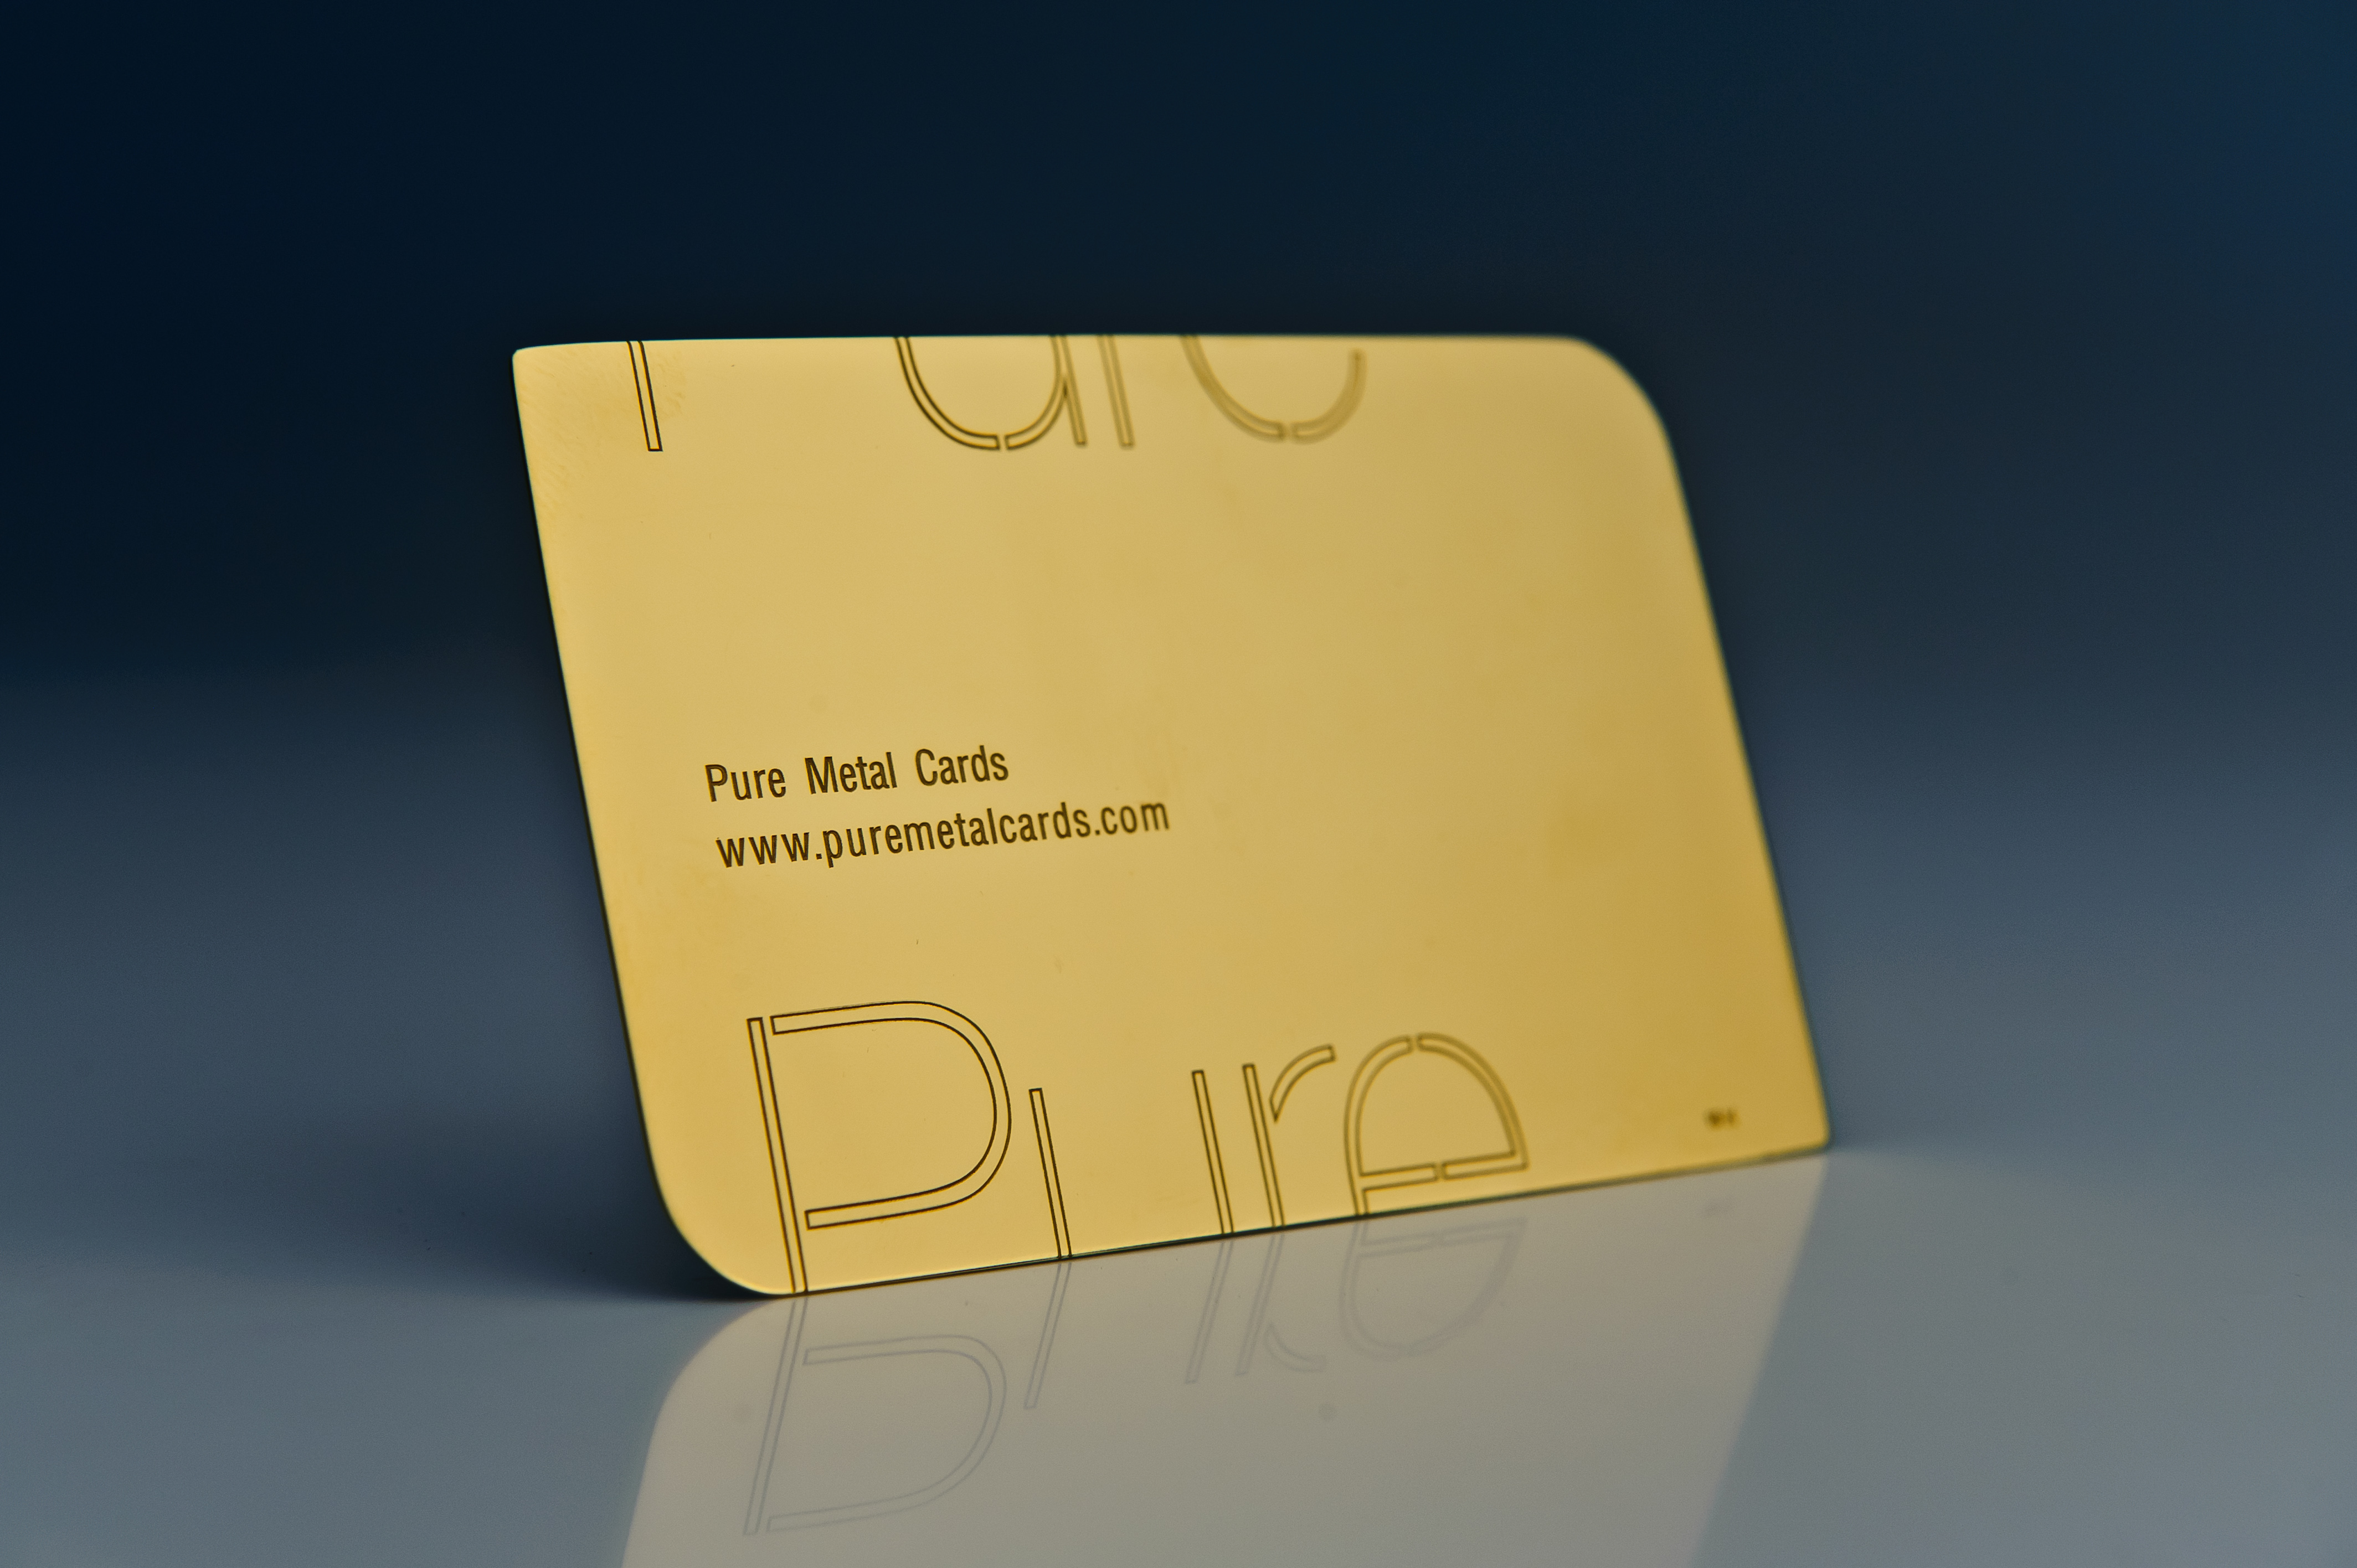 British Owned Hong Kong Based Startup PureMetalCards Launches